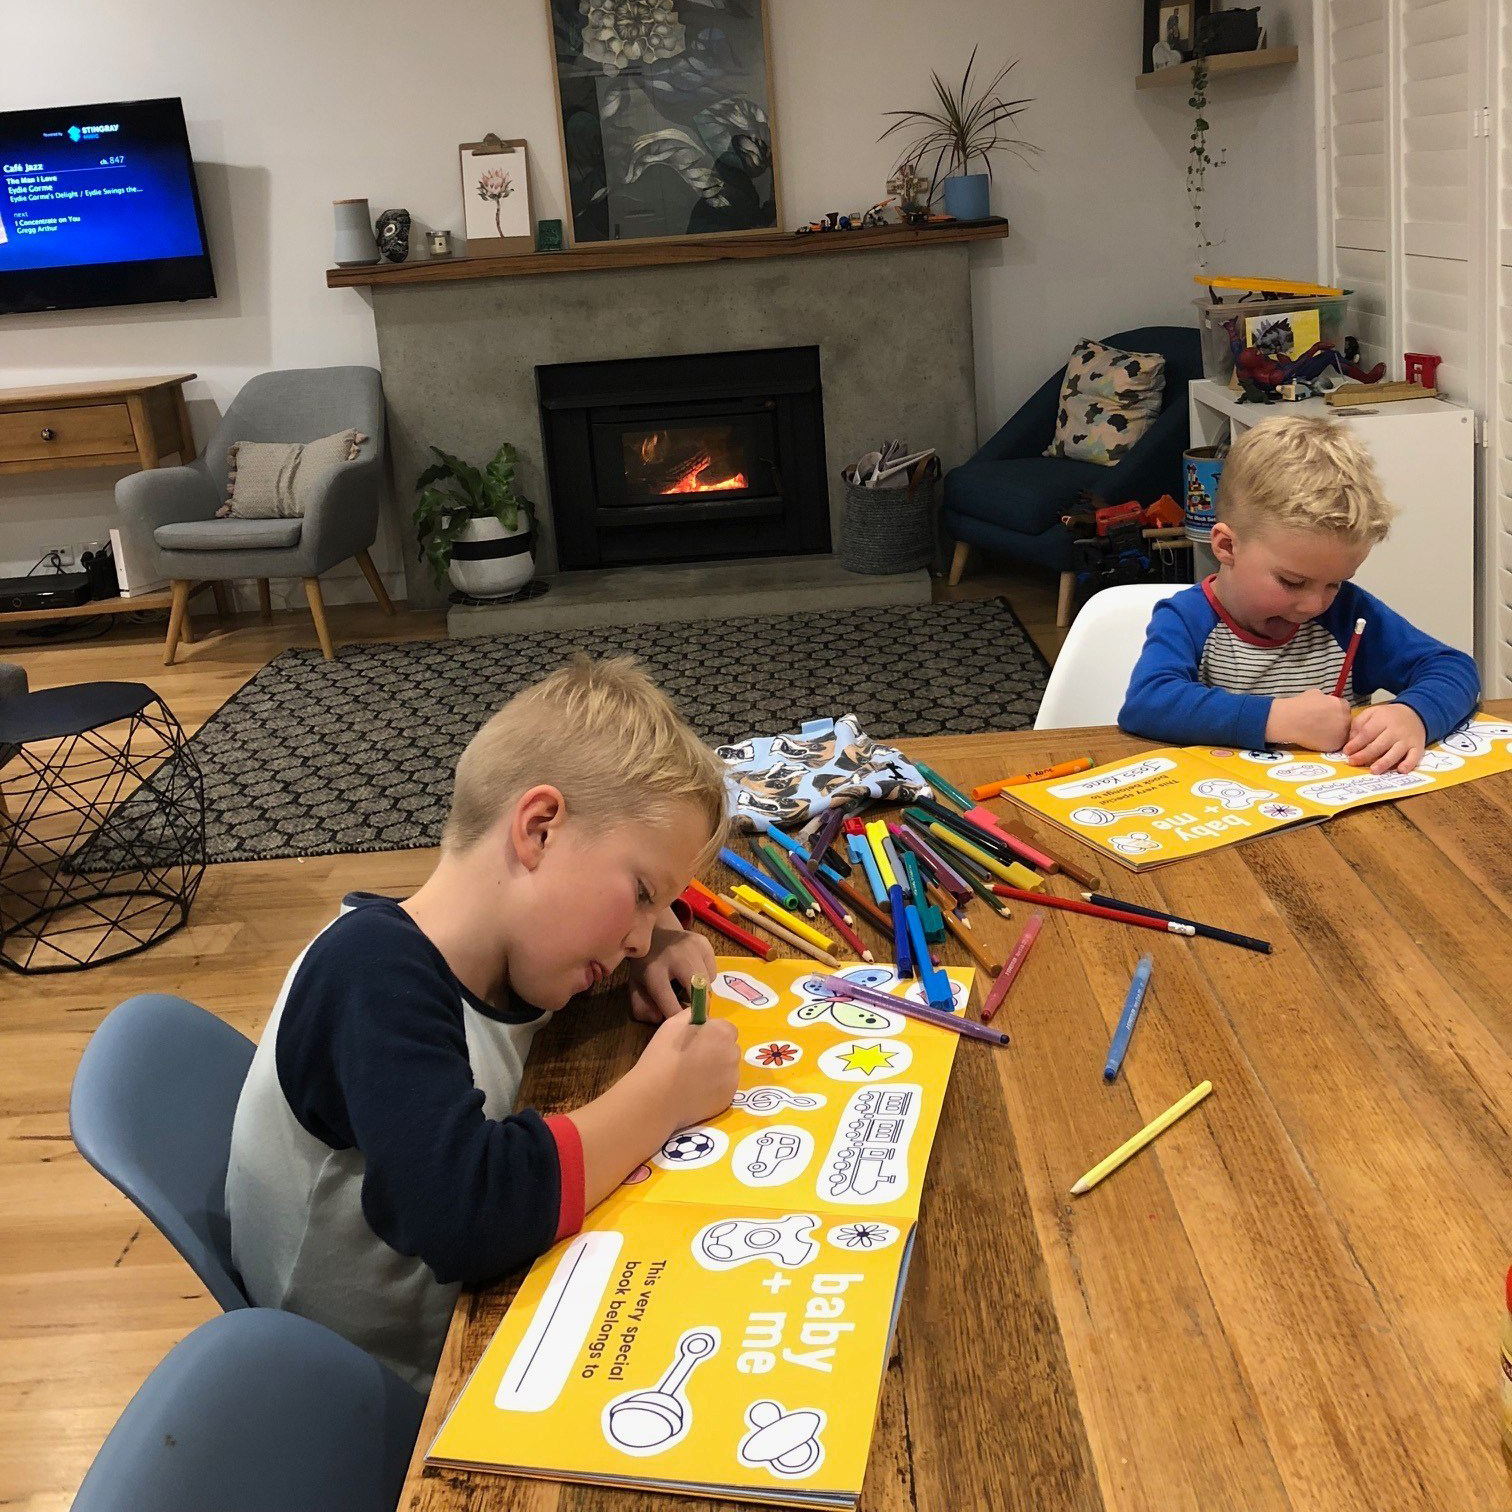 An image of children completing a page of the baby + me book, a book for older siblings. baby + me is in a unique format, with space for the child to write and to draw